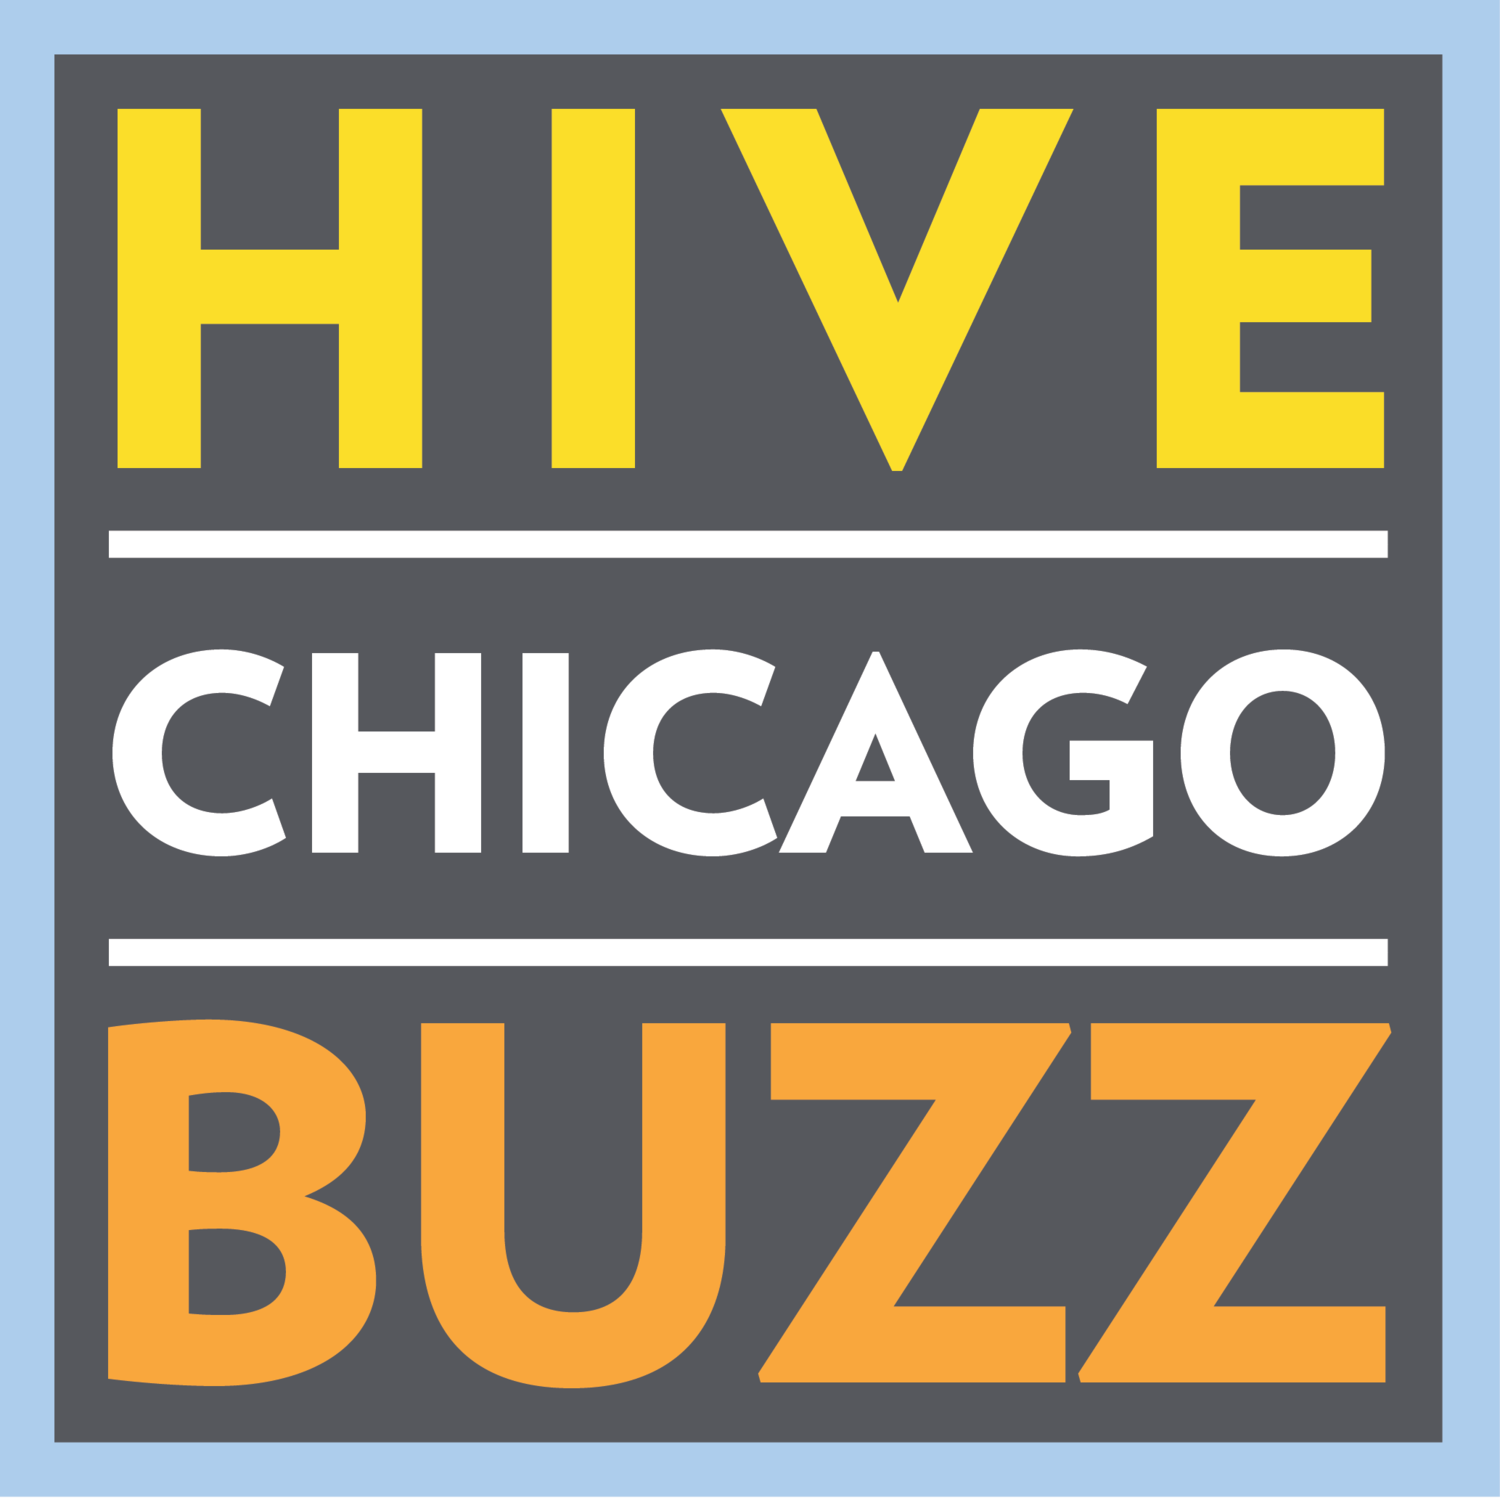 Hive Chicago Buzz